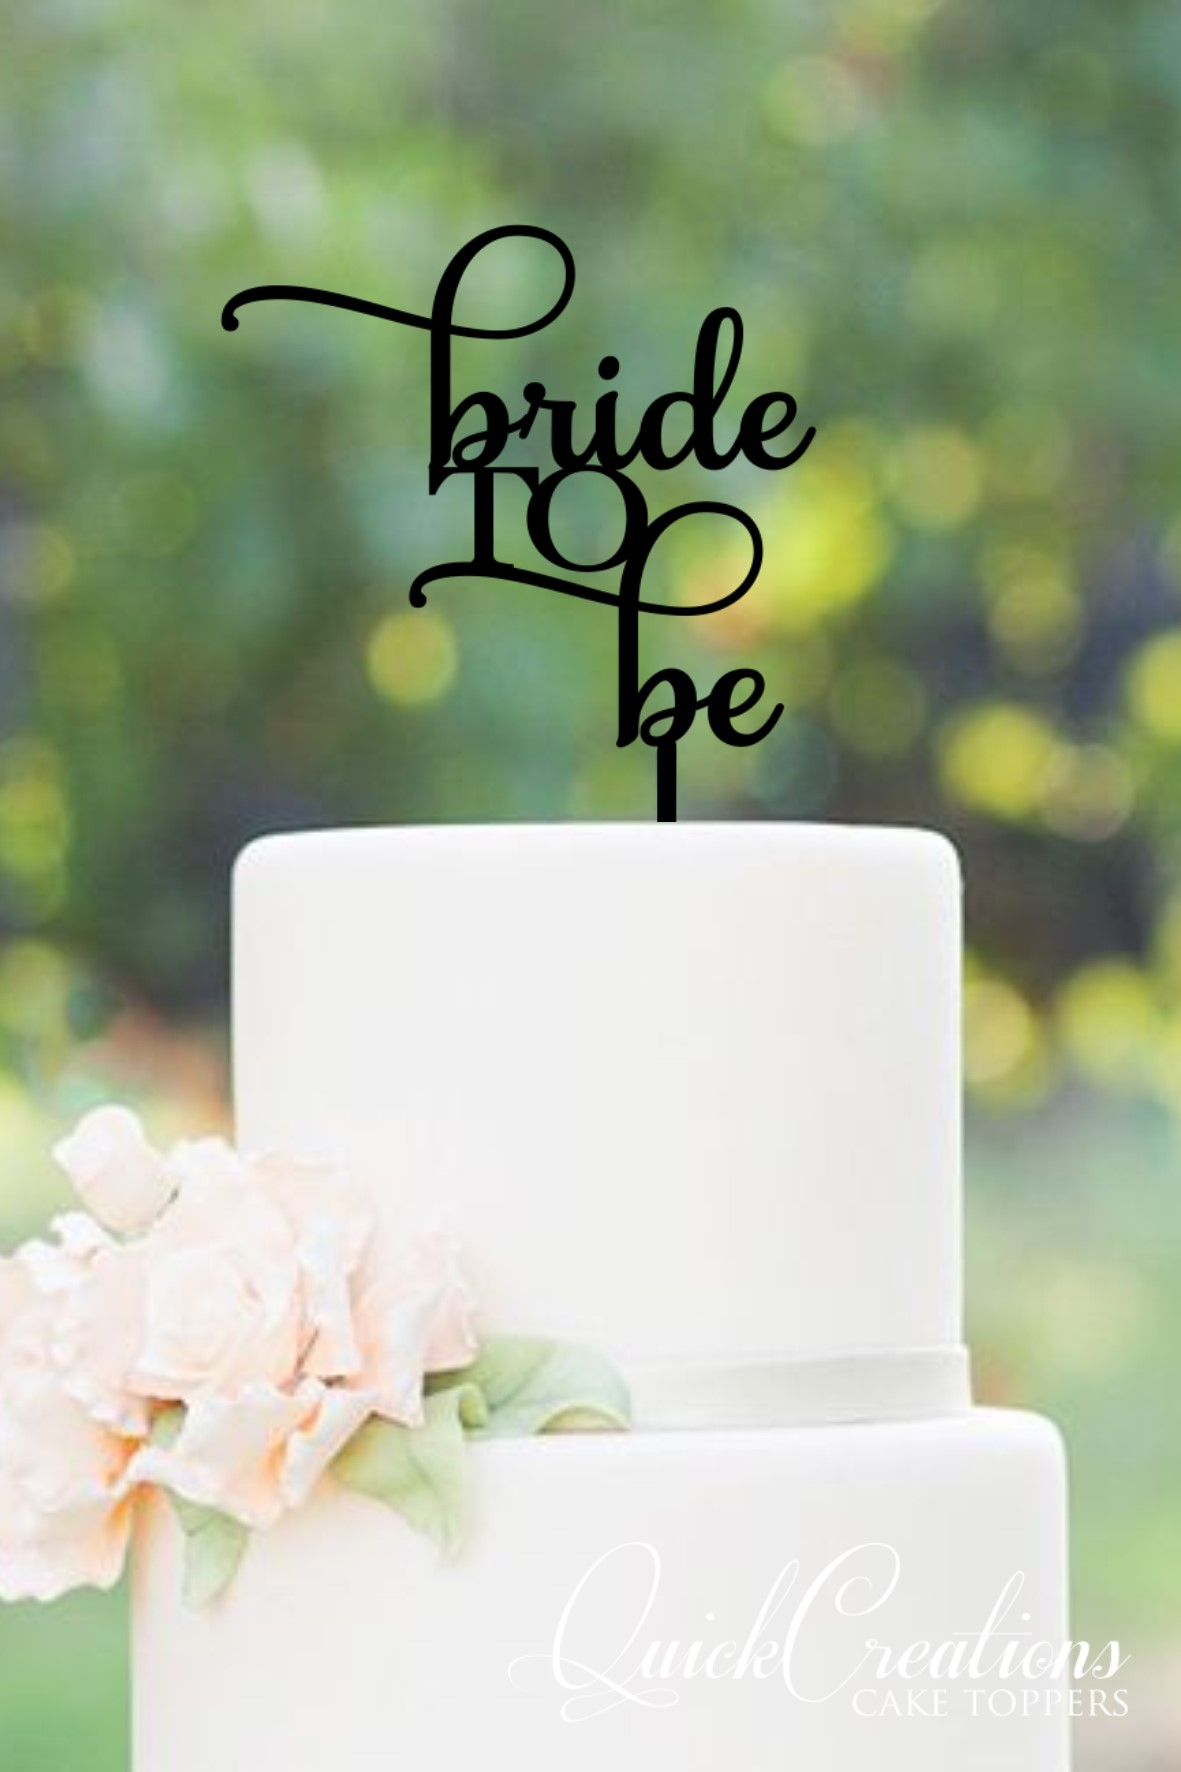 Quick Creations Cake Topper - Bride to Be v2